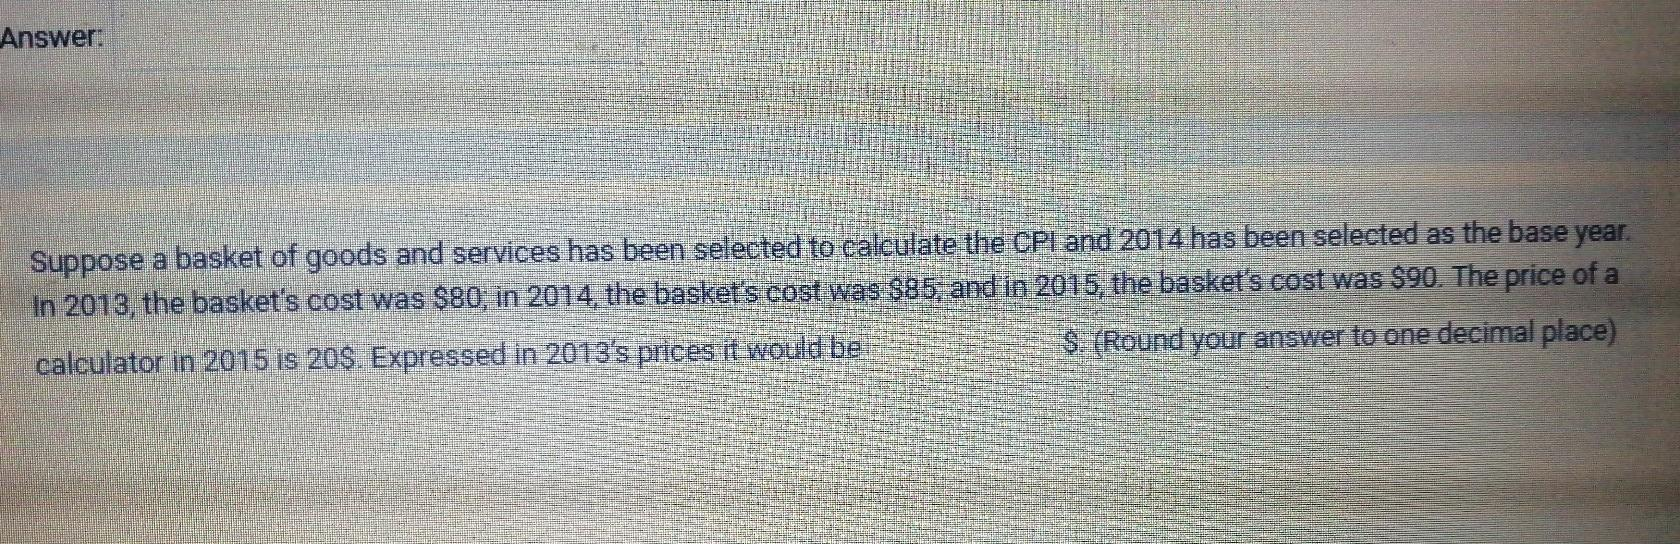 Answer: Suppose a basket of goods and services has been selected to calculate the CPI and 2014 has been selected as the base